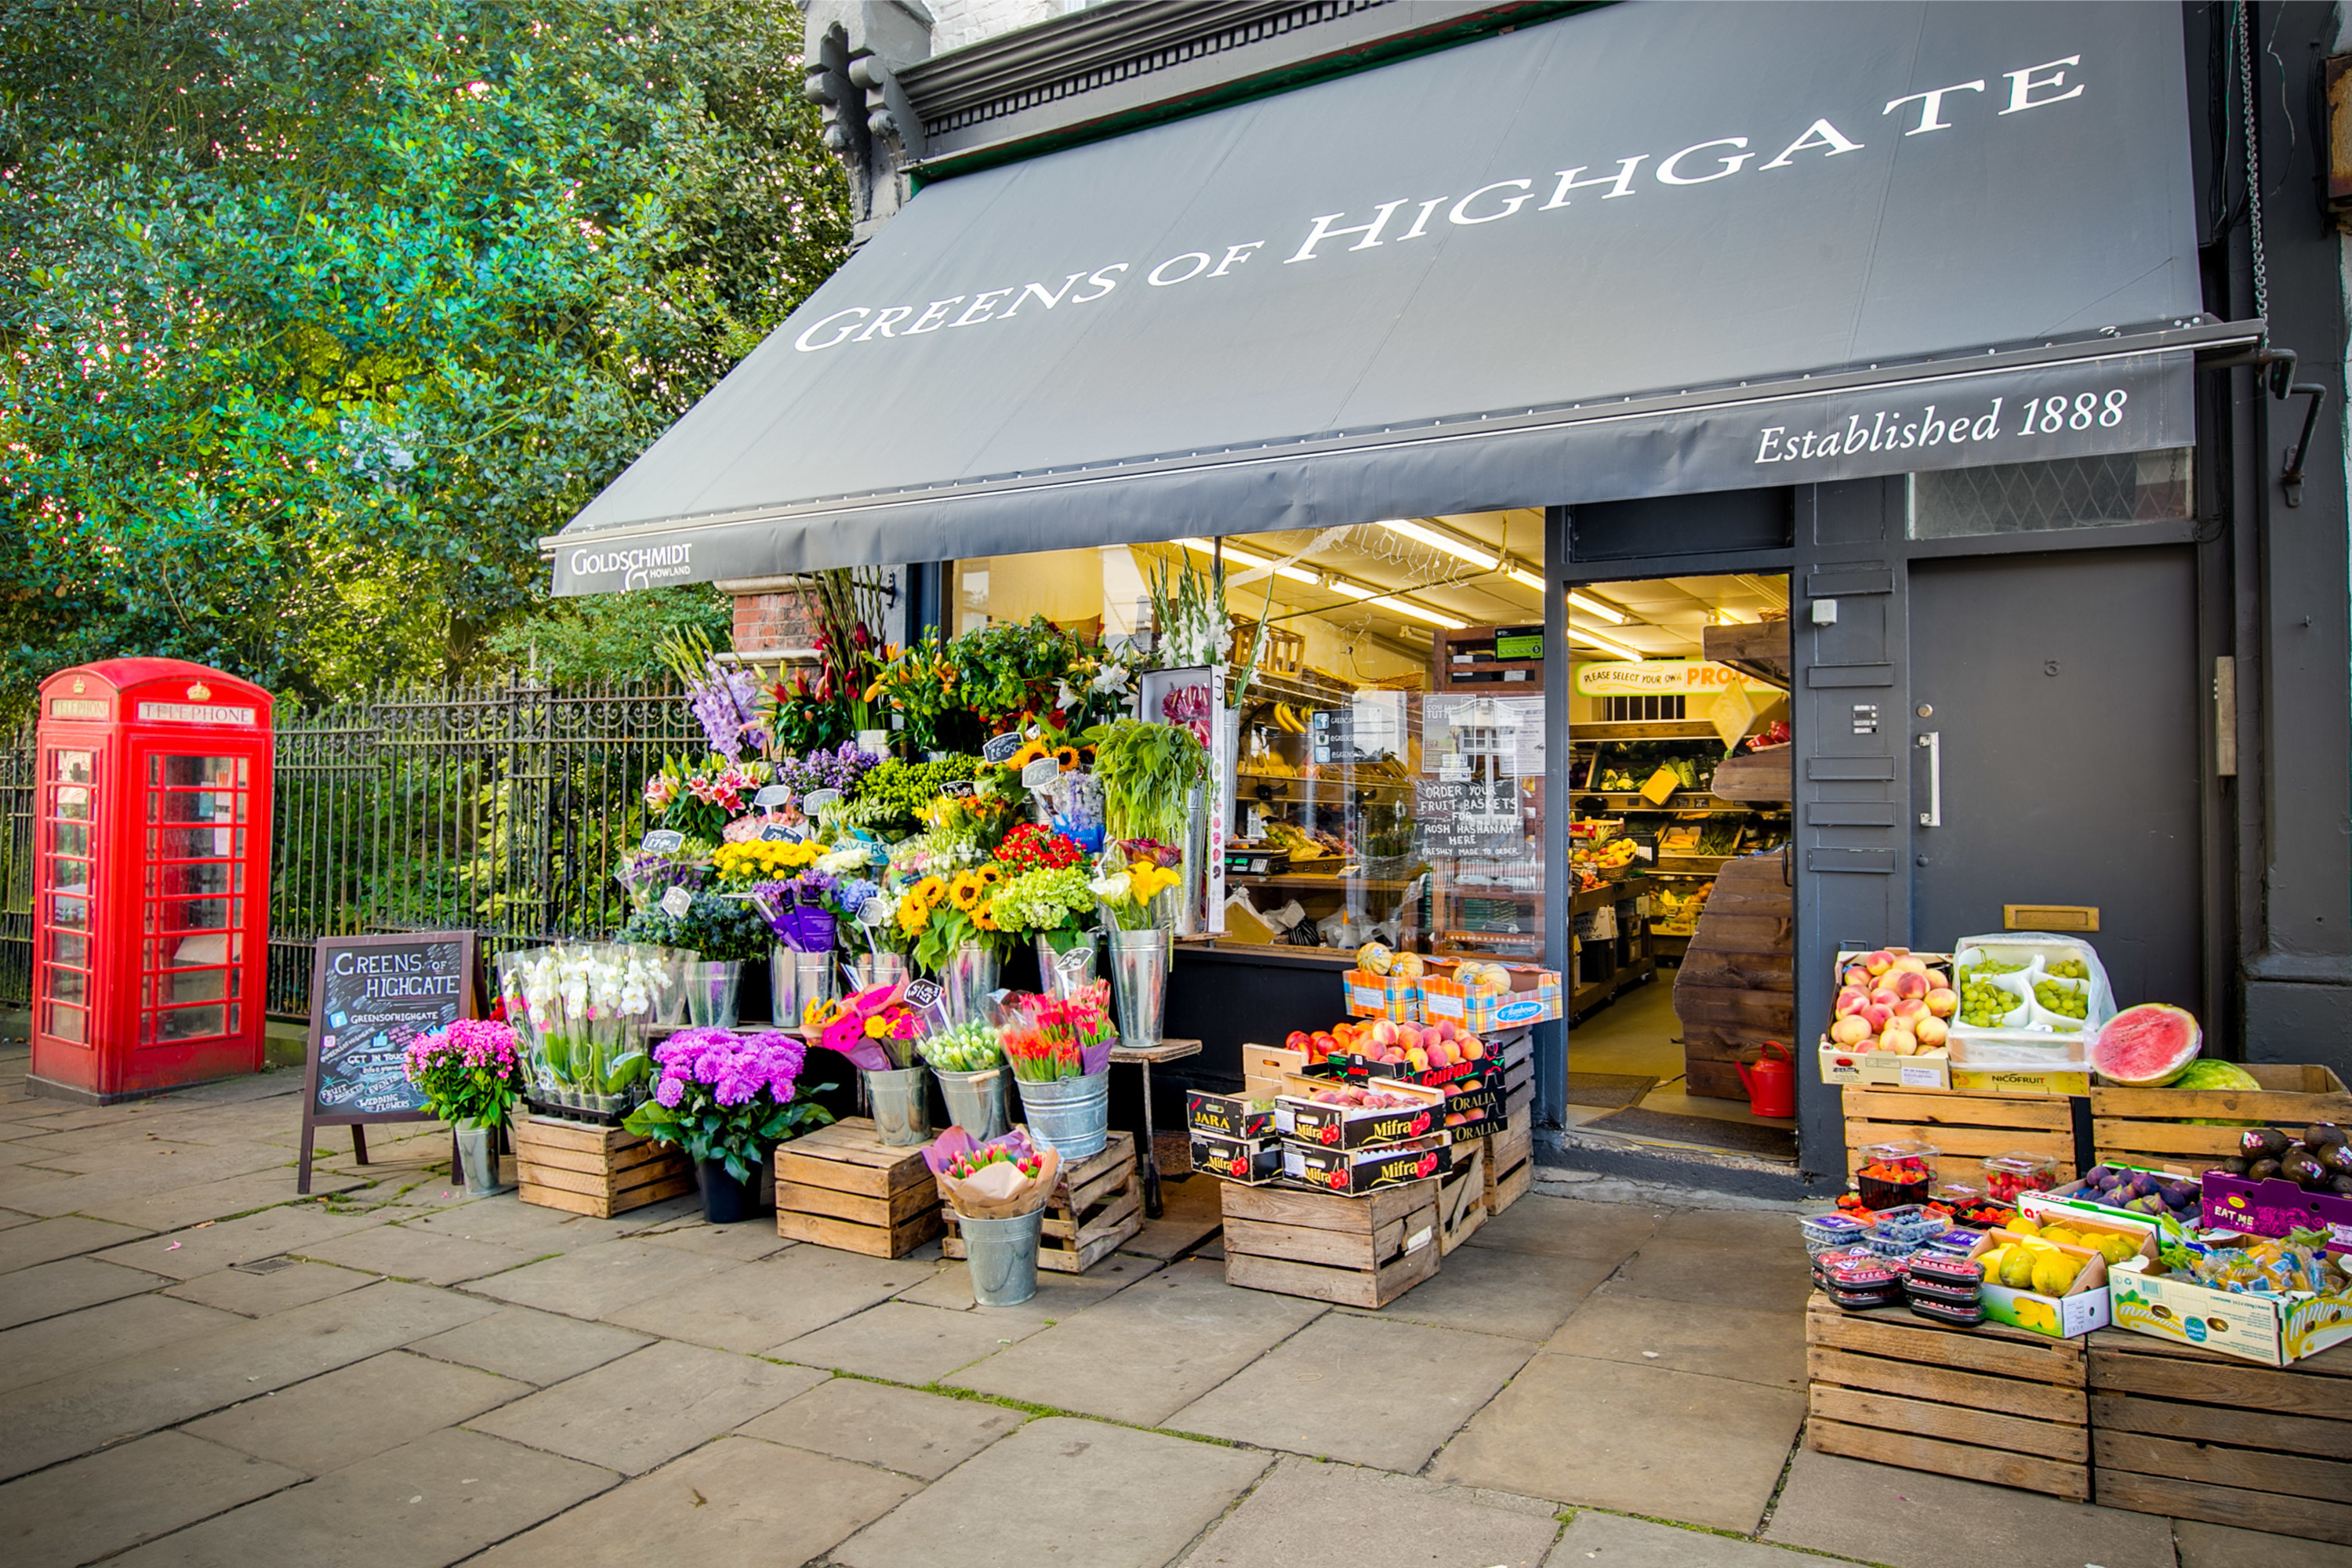 Shop: Greens of Highgate